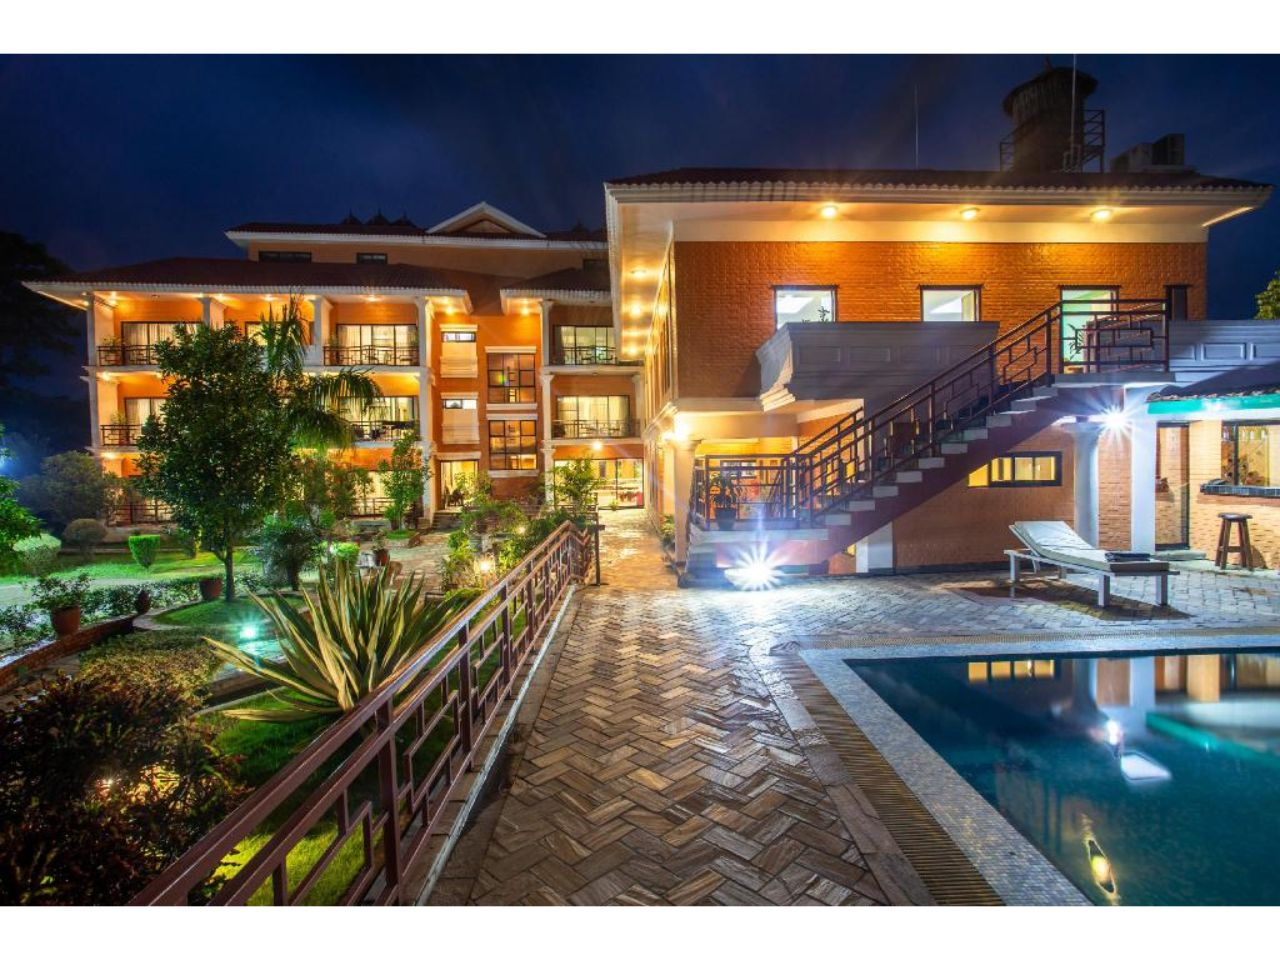 Microtech m&e concludes Hotel Land Mark Chitwan Project